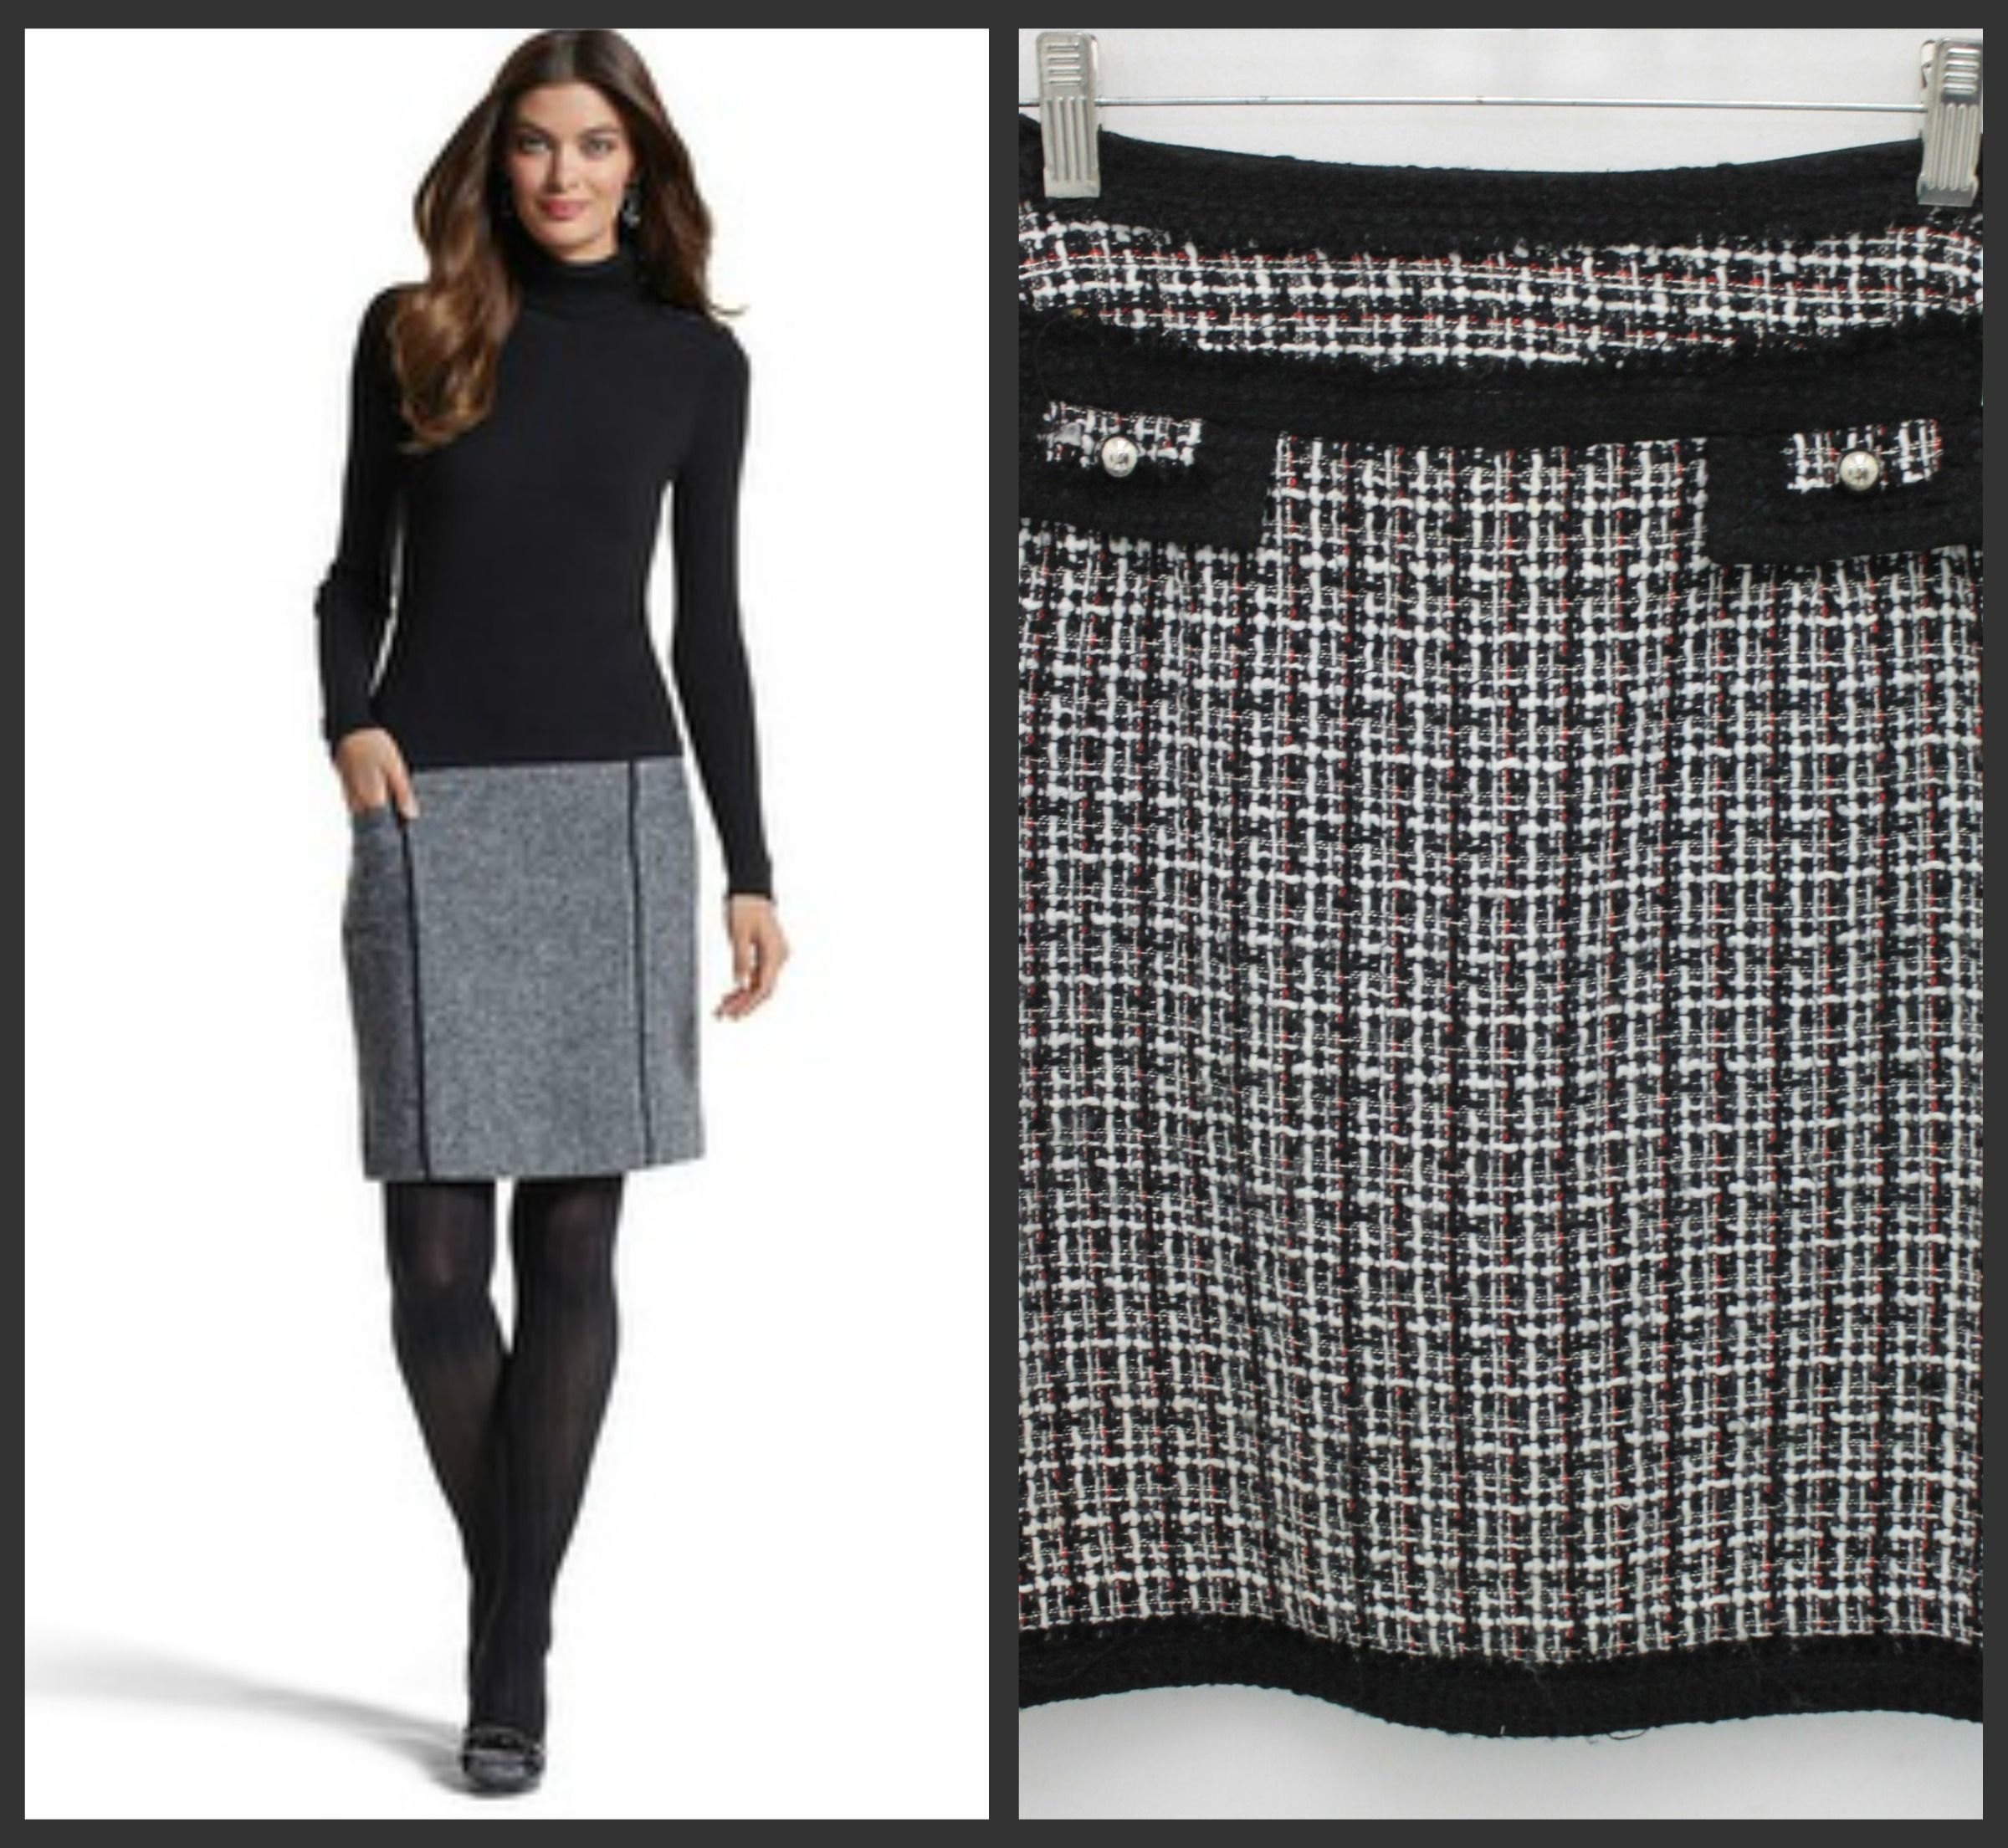 Firestruck reccomend Black and white tweed skirt